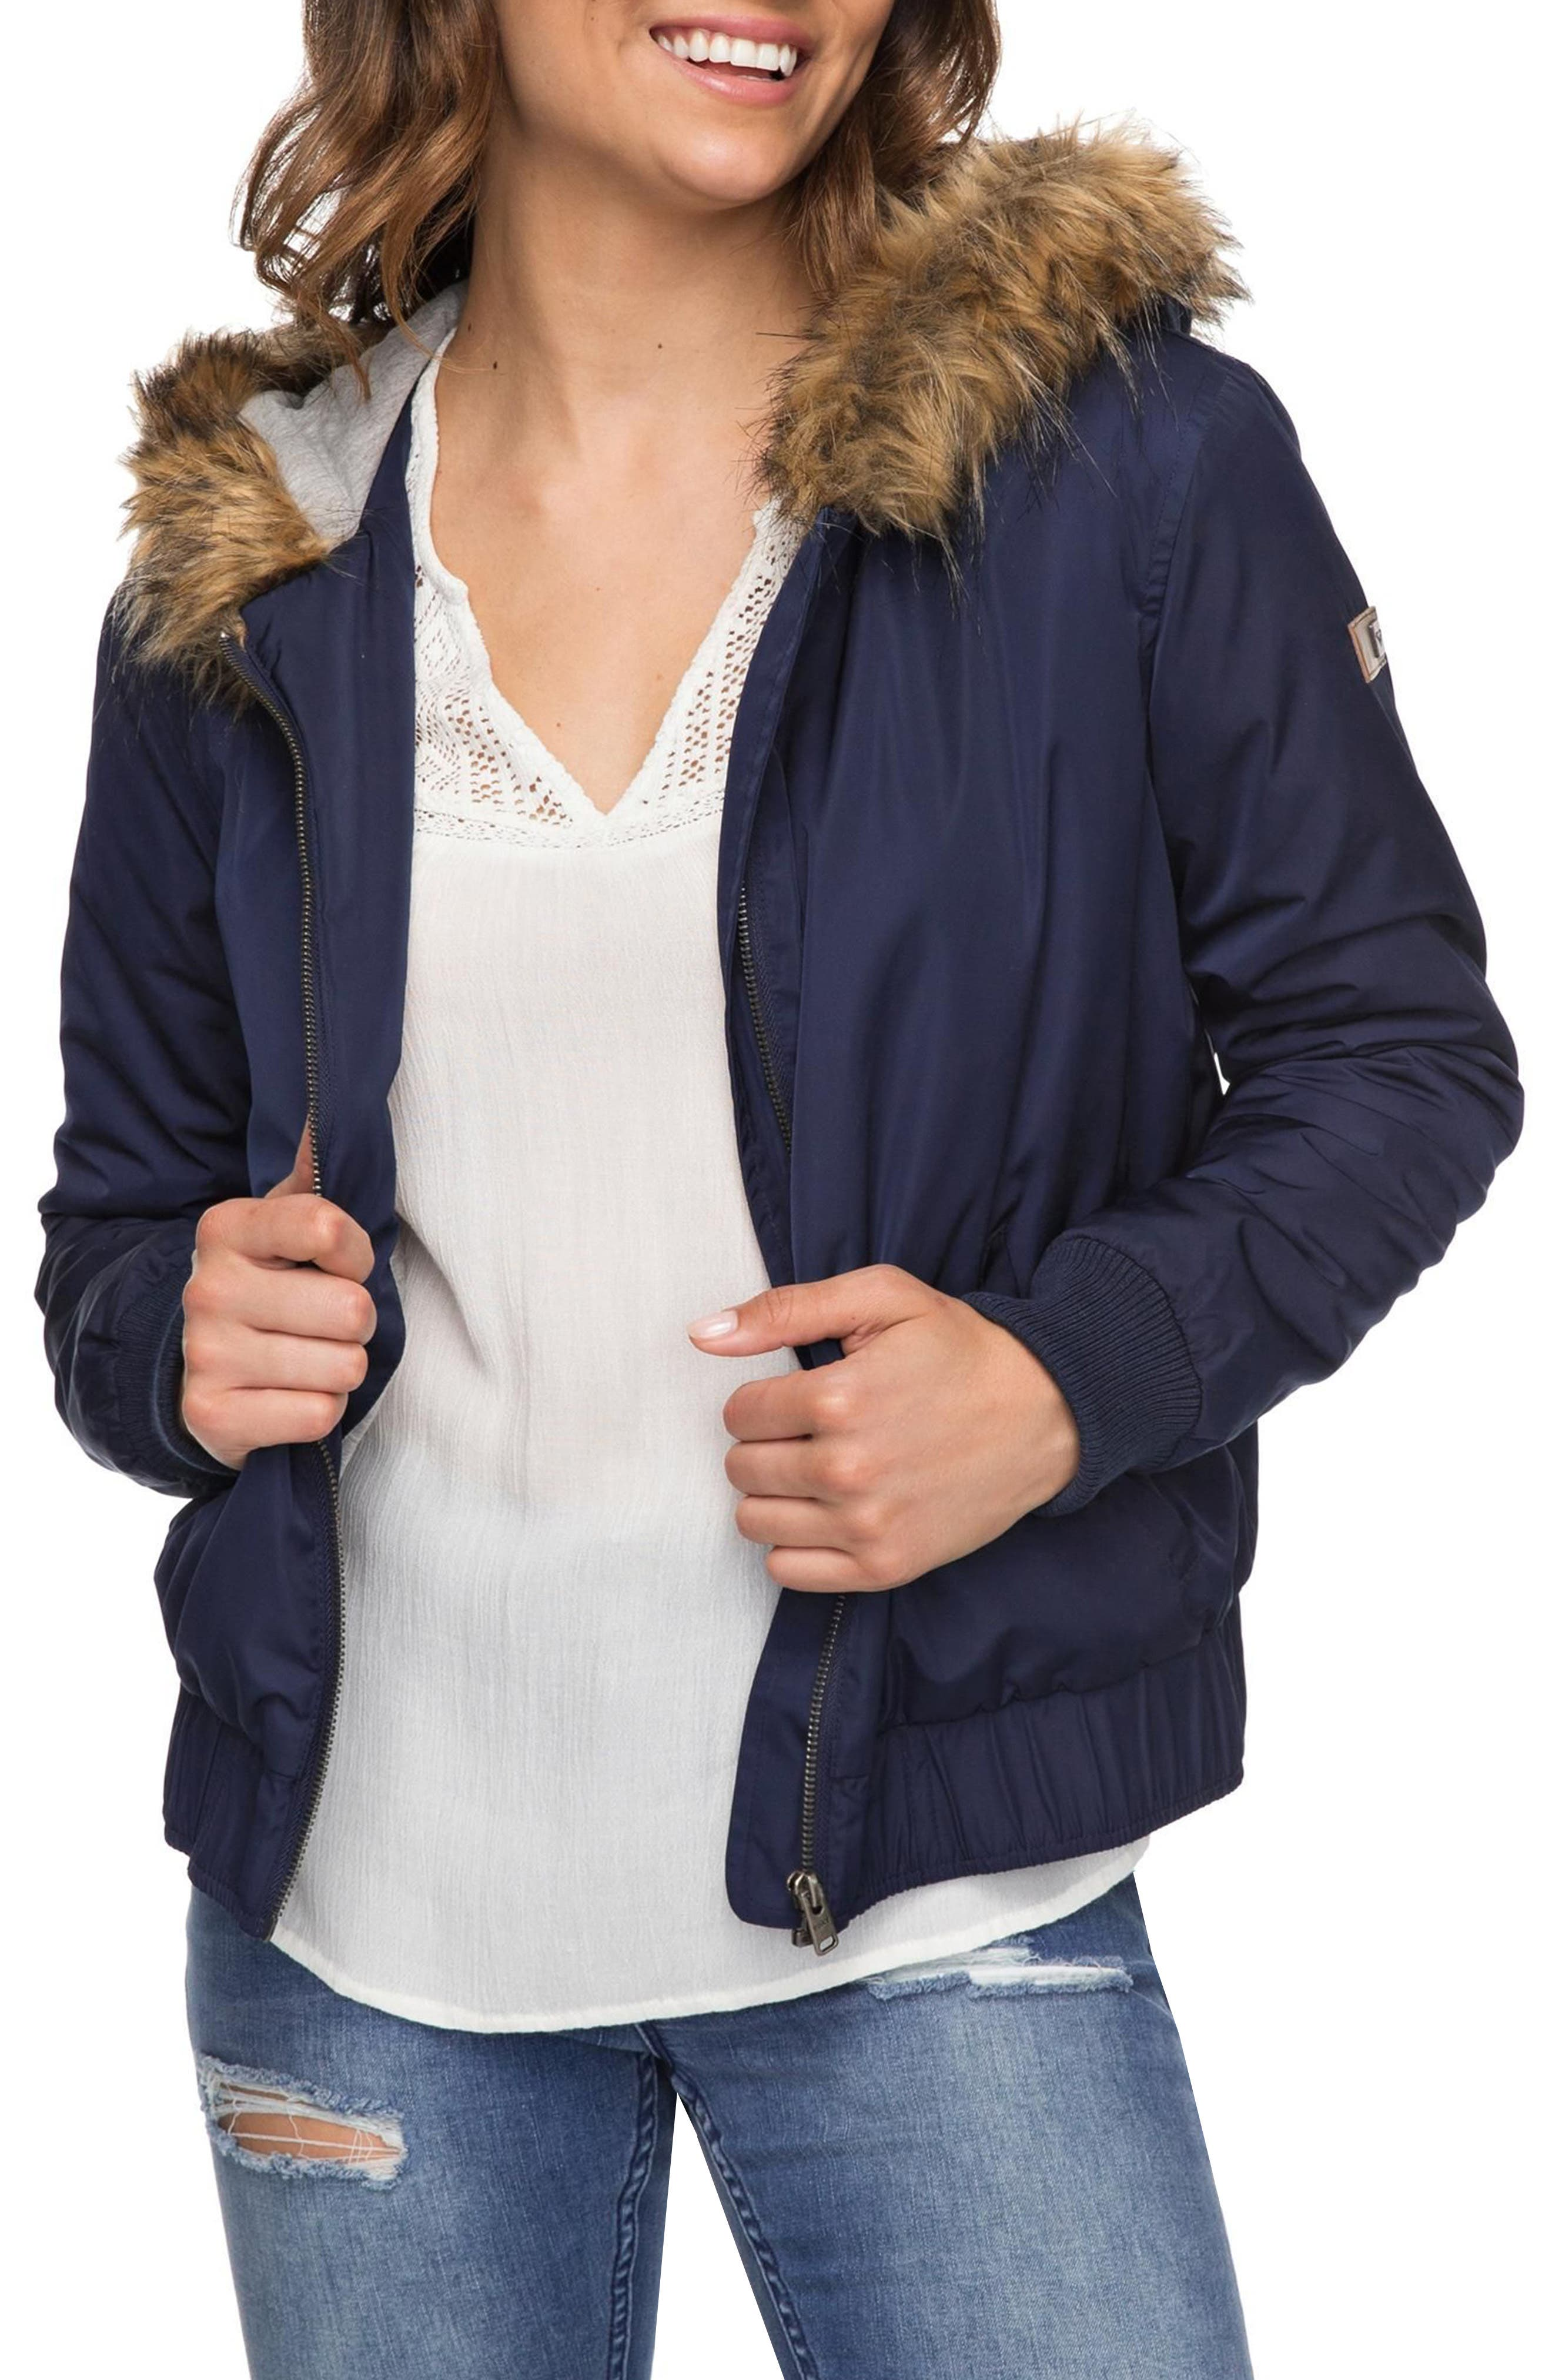 Oh Reely Faux Fur Bomber Jacket,                         Main,                         color, Dress Blues